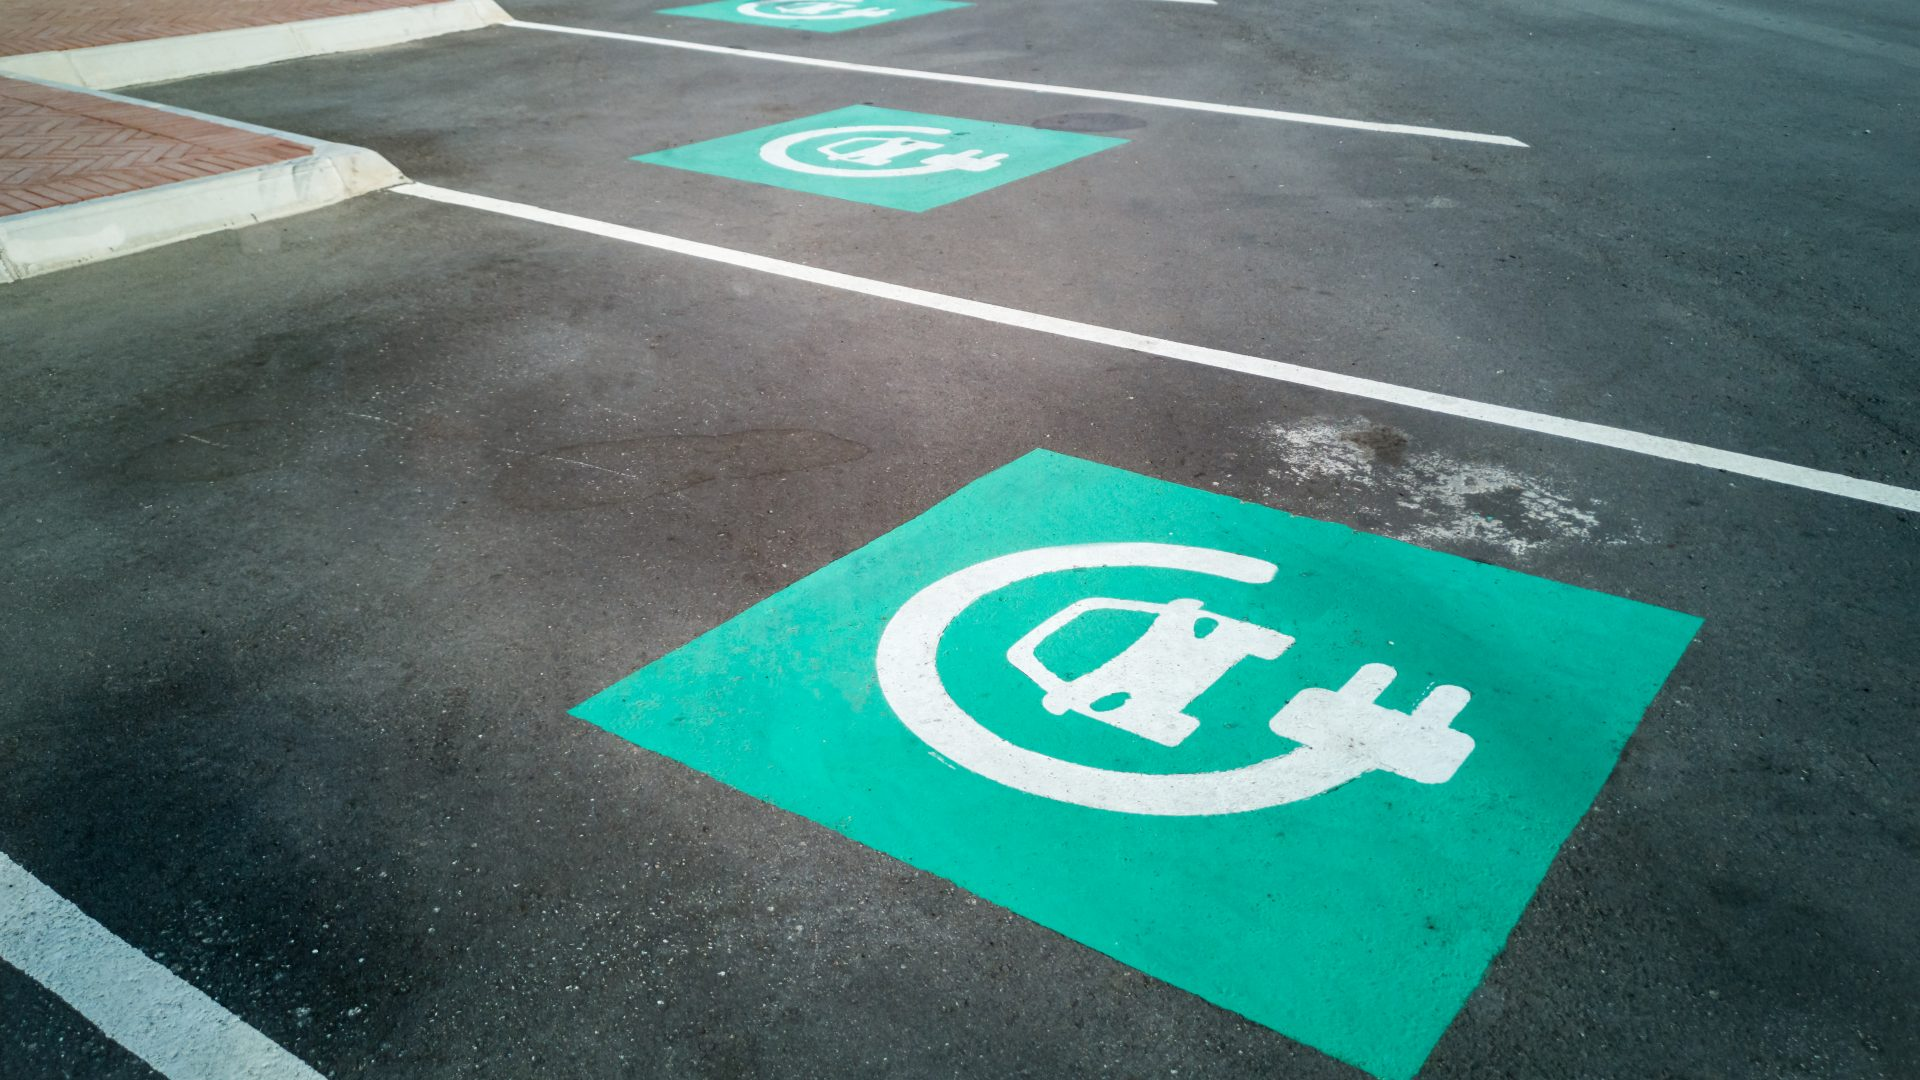 logos interview with Christopher Burghardt – Managing Director Europe at Chargepoint about batteries